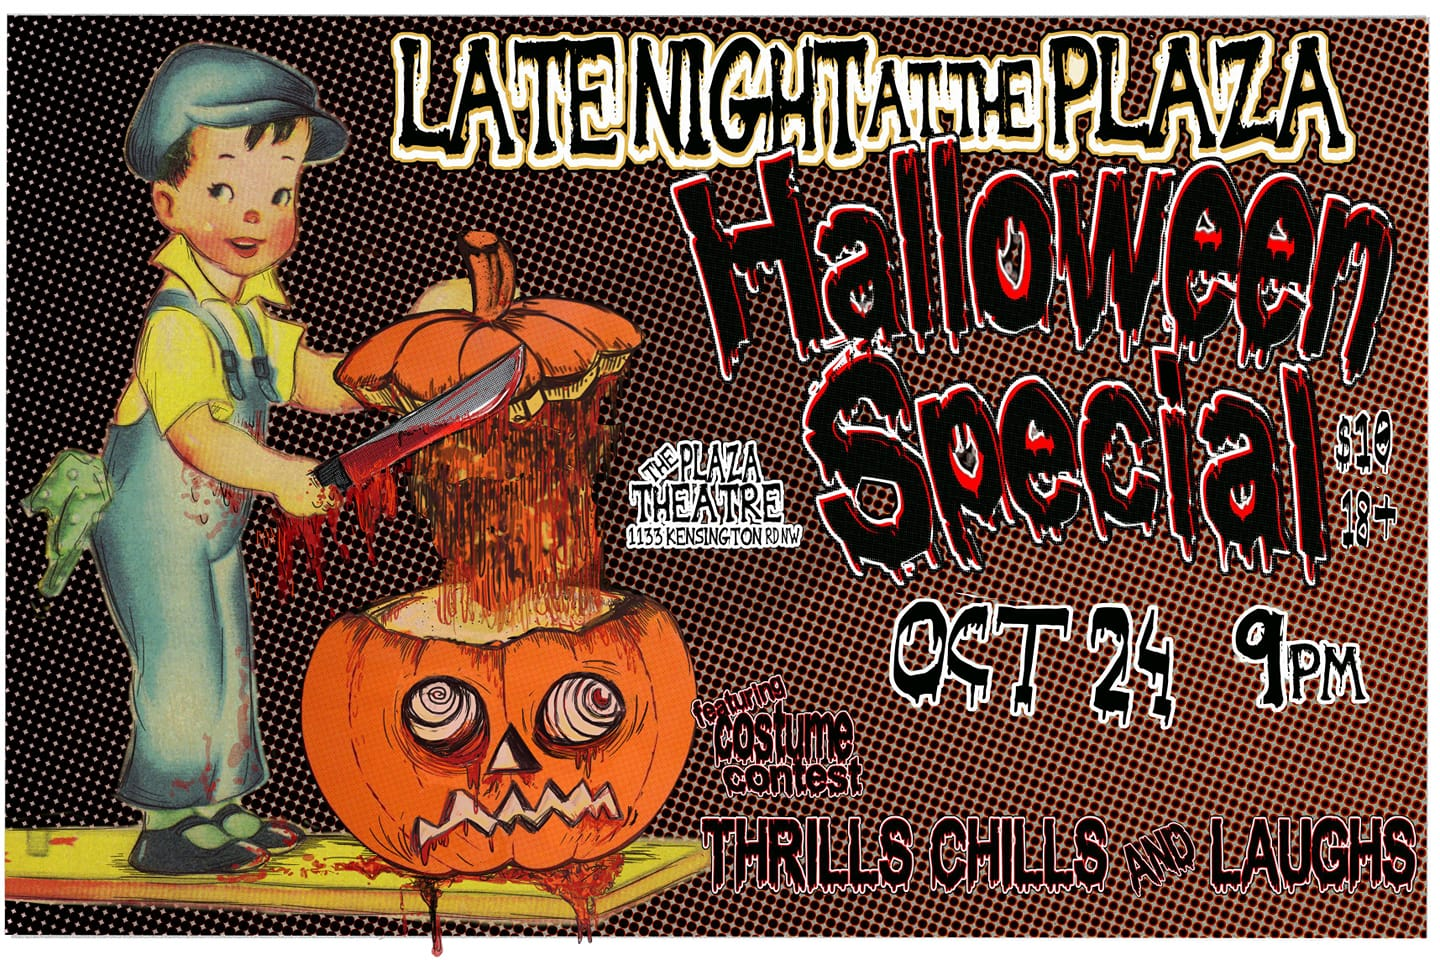 Wednesday, Otober 24th @ The Plaza Theatre Late Night at the Plaza - Halloween Special -